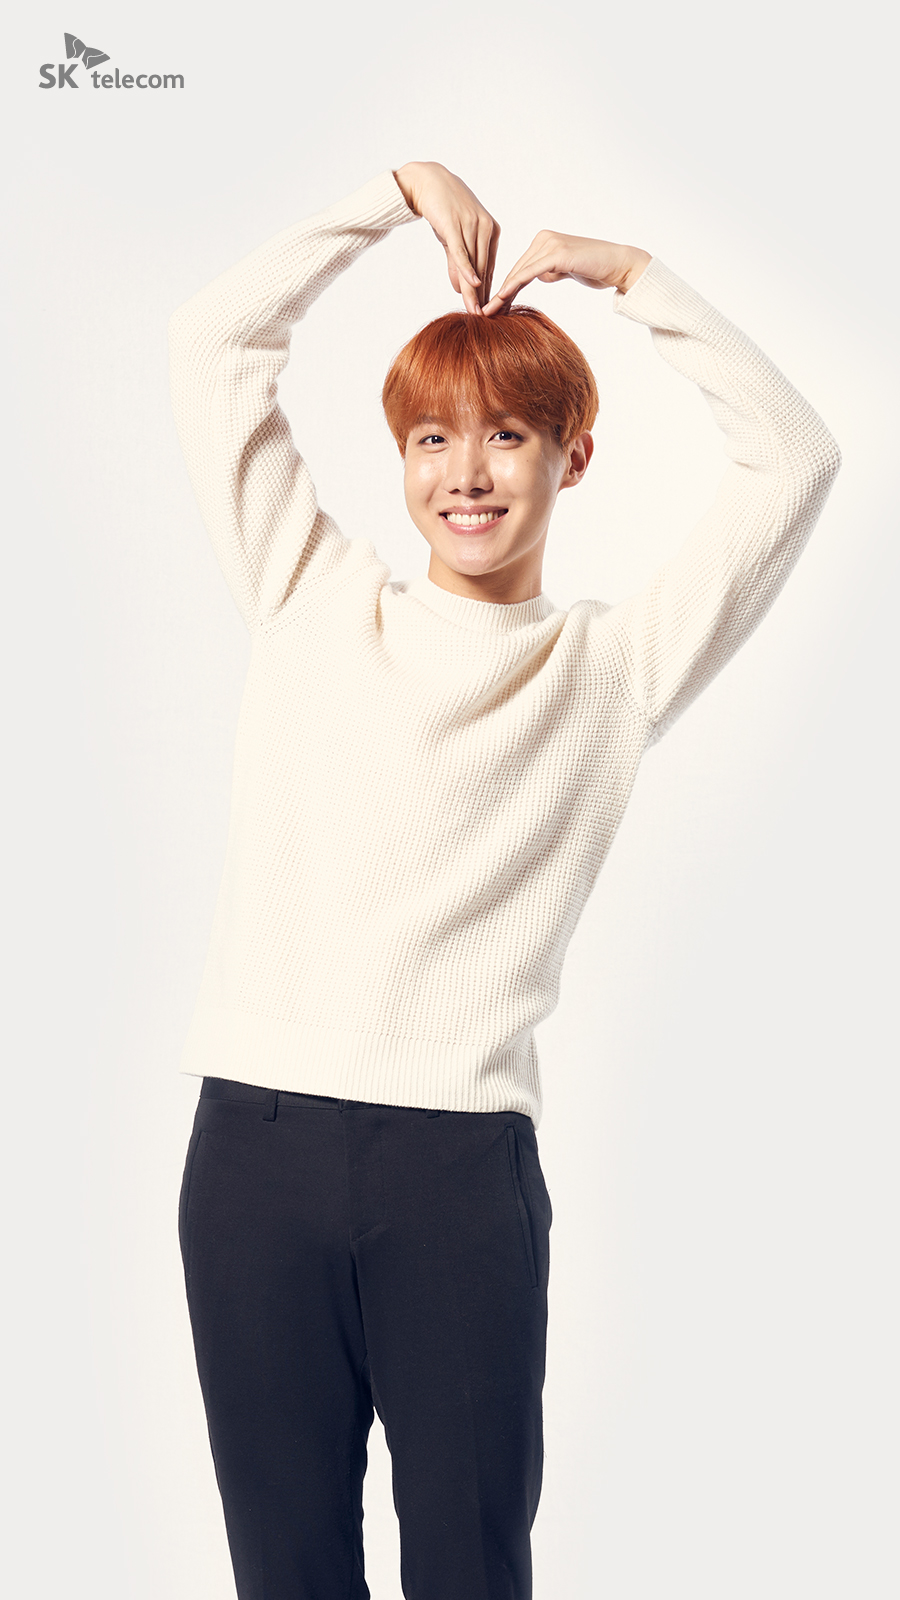 Cute Korean Style Wallpaper Picture Bts For Sk Telecom 161216